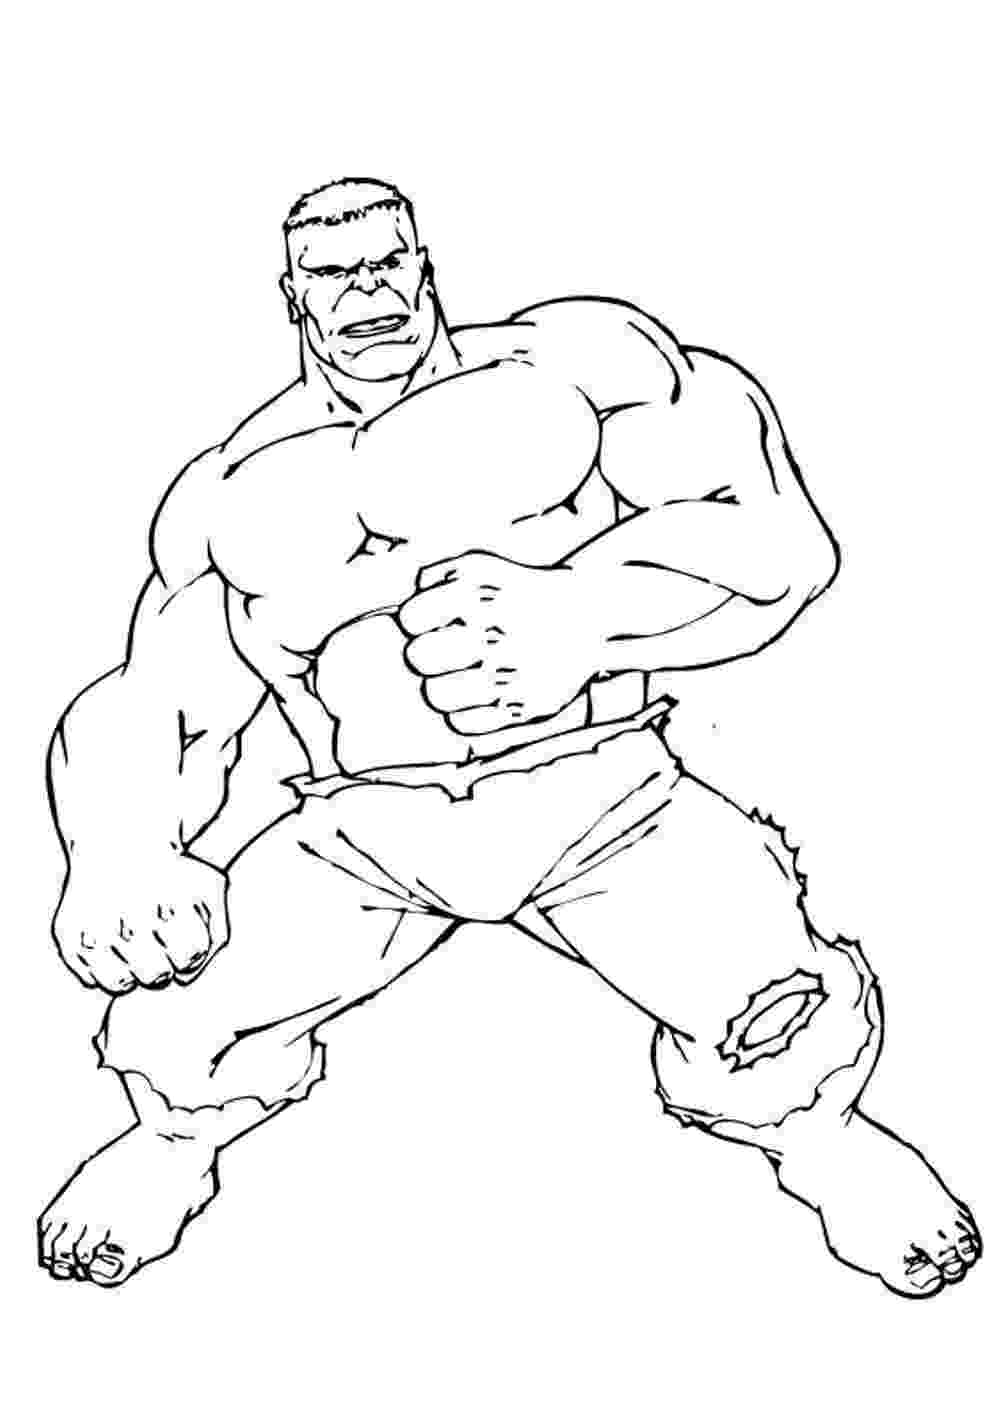 coloring pages hulk hulk cartoon coloring pages download and print for free hulk coloring pages